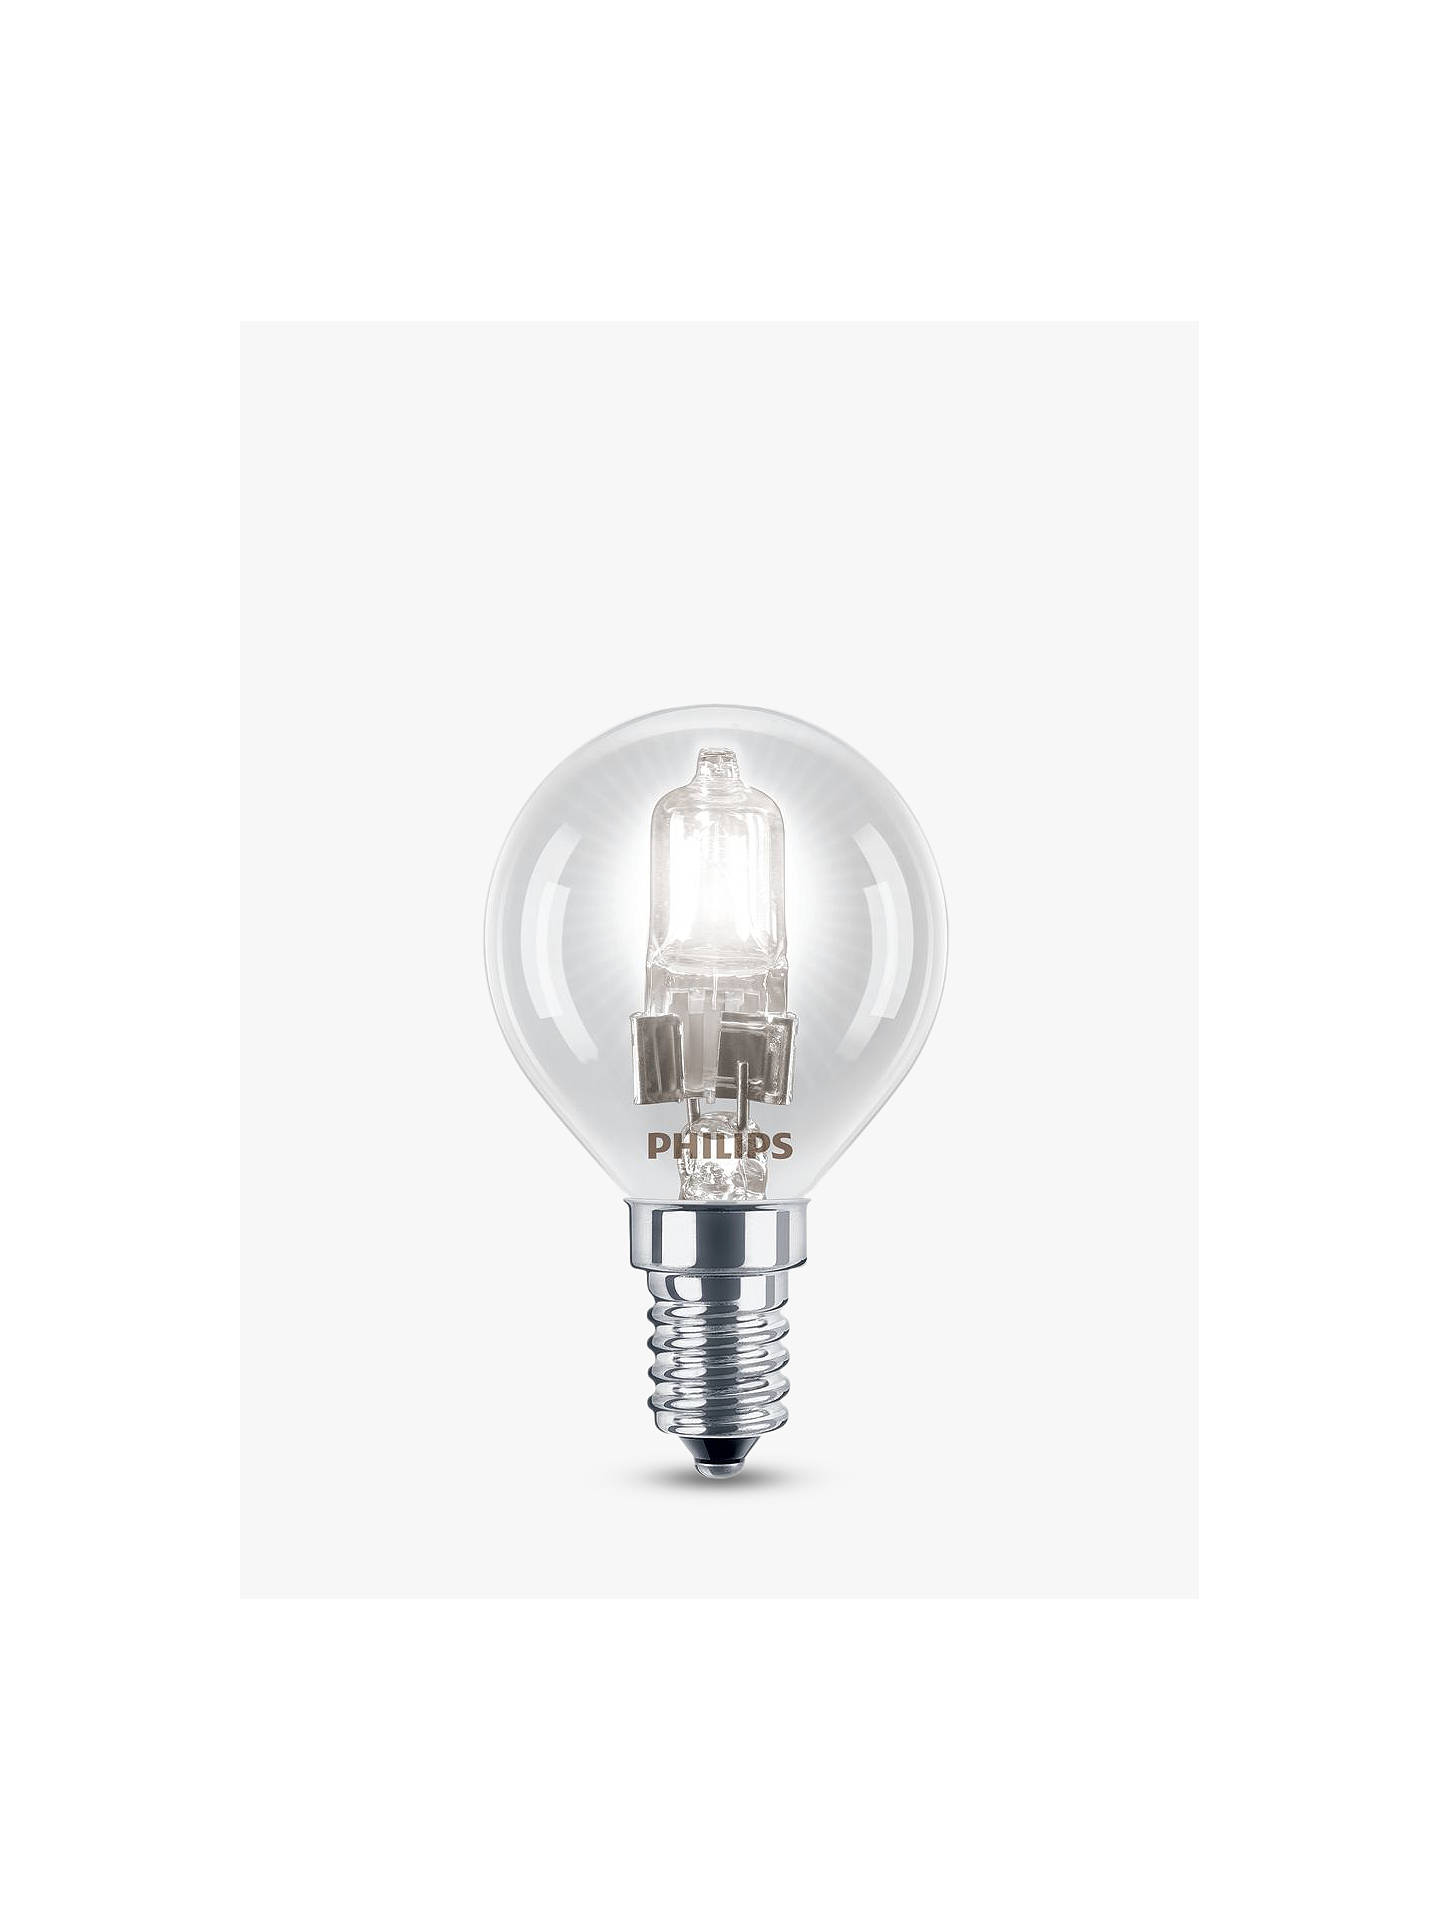 BuyPhilips 28W SES Halogen Classic Golf Ball Bulb, Clear Online at johnlewis.com